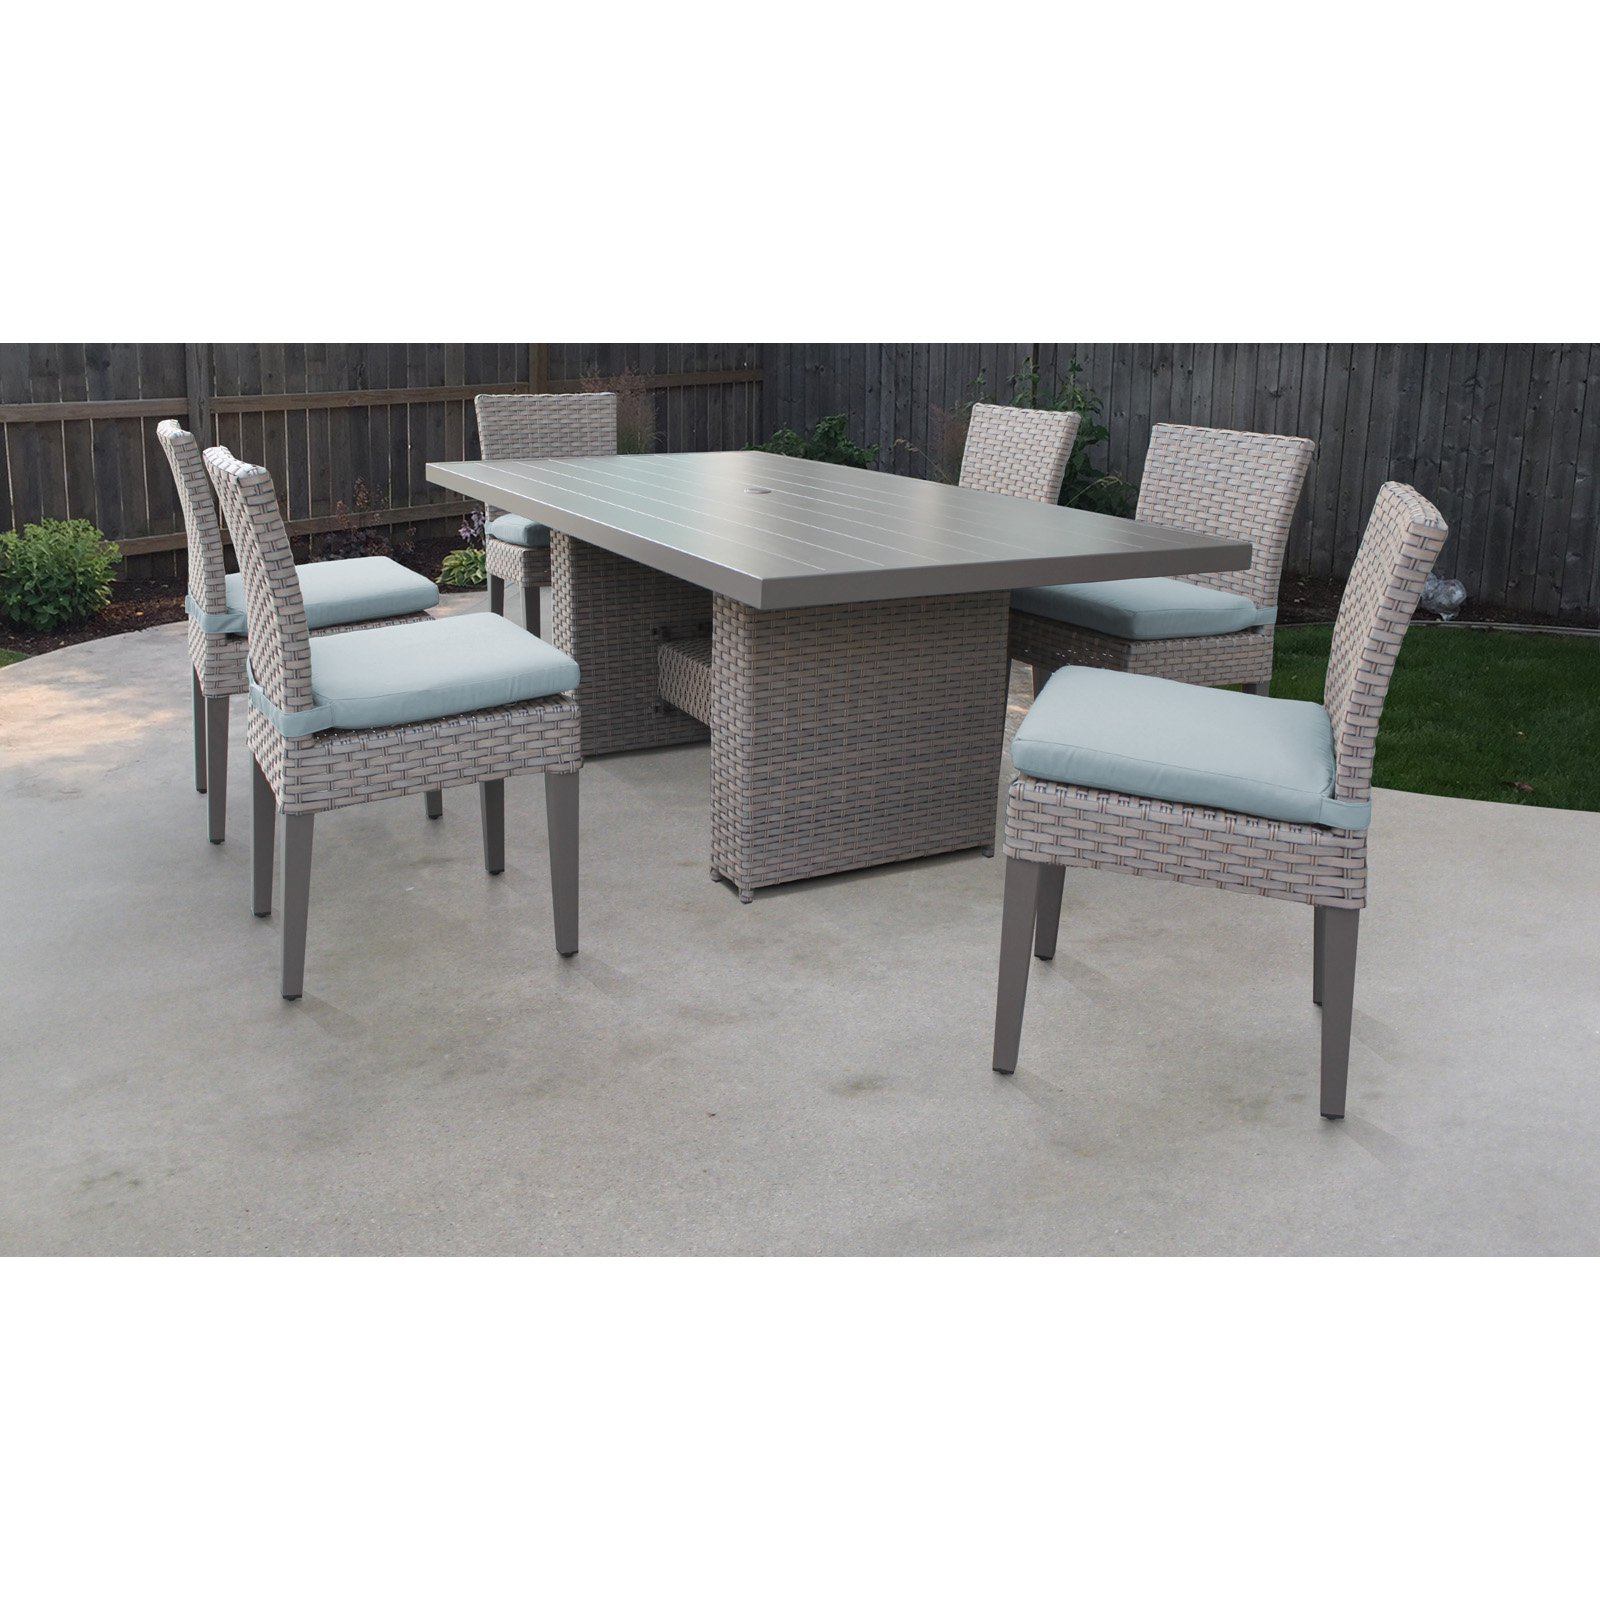 Tk Classics Florence Wicker 7 Piece Patio Dining Set With Armless Chairs